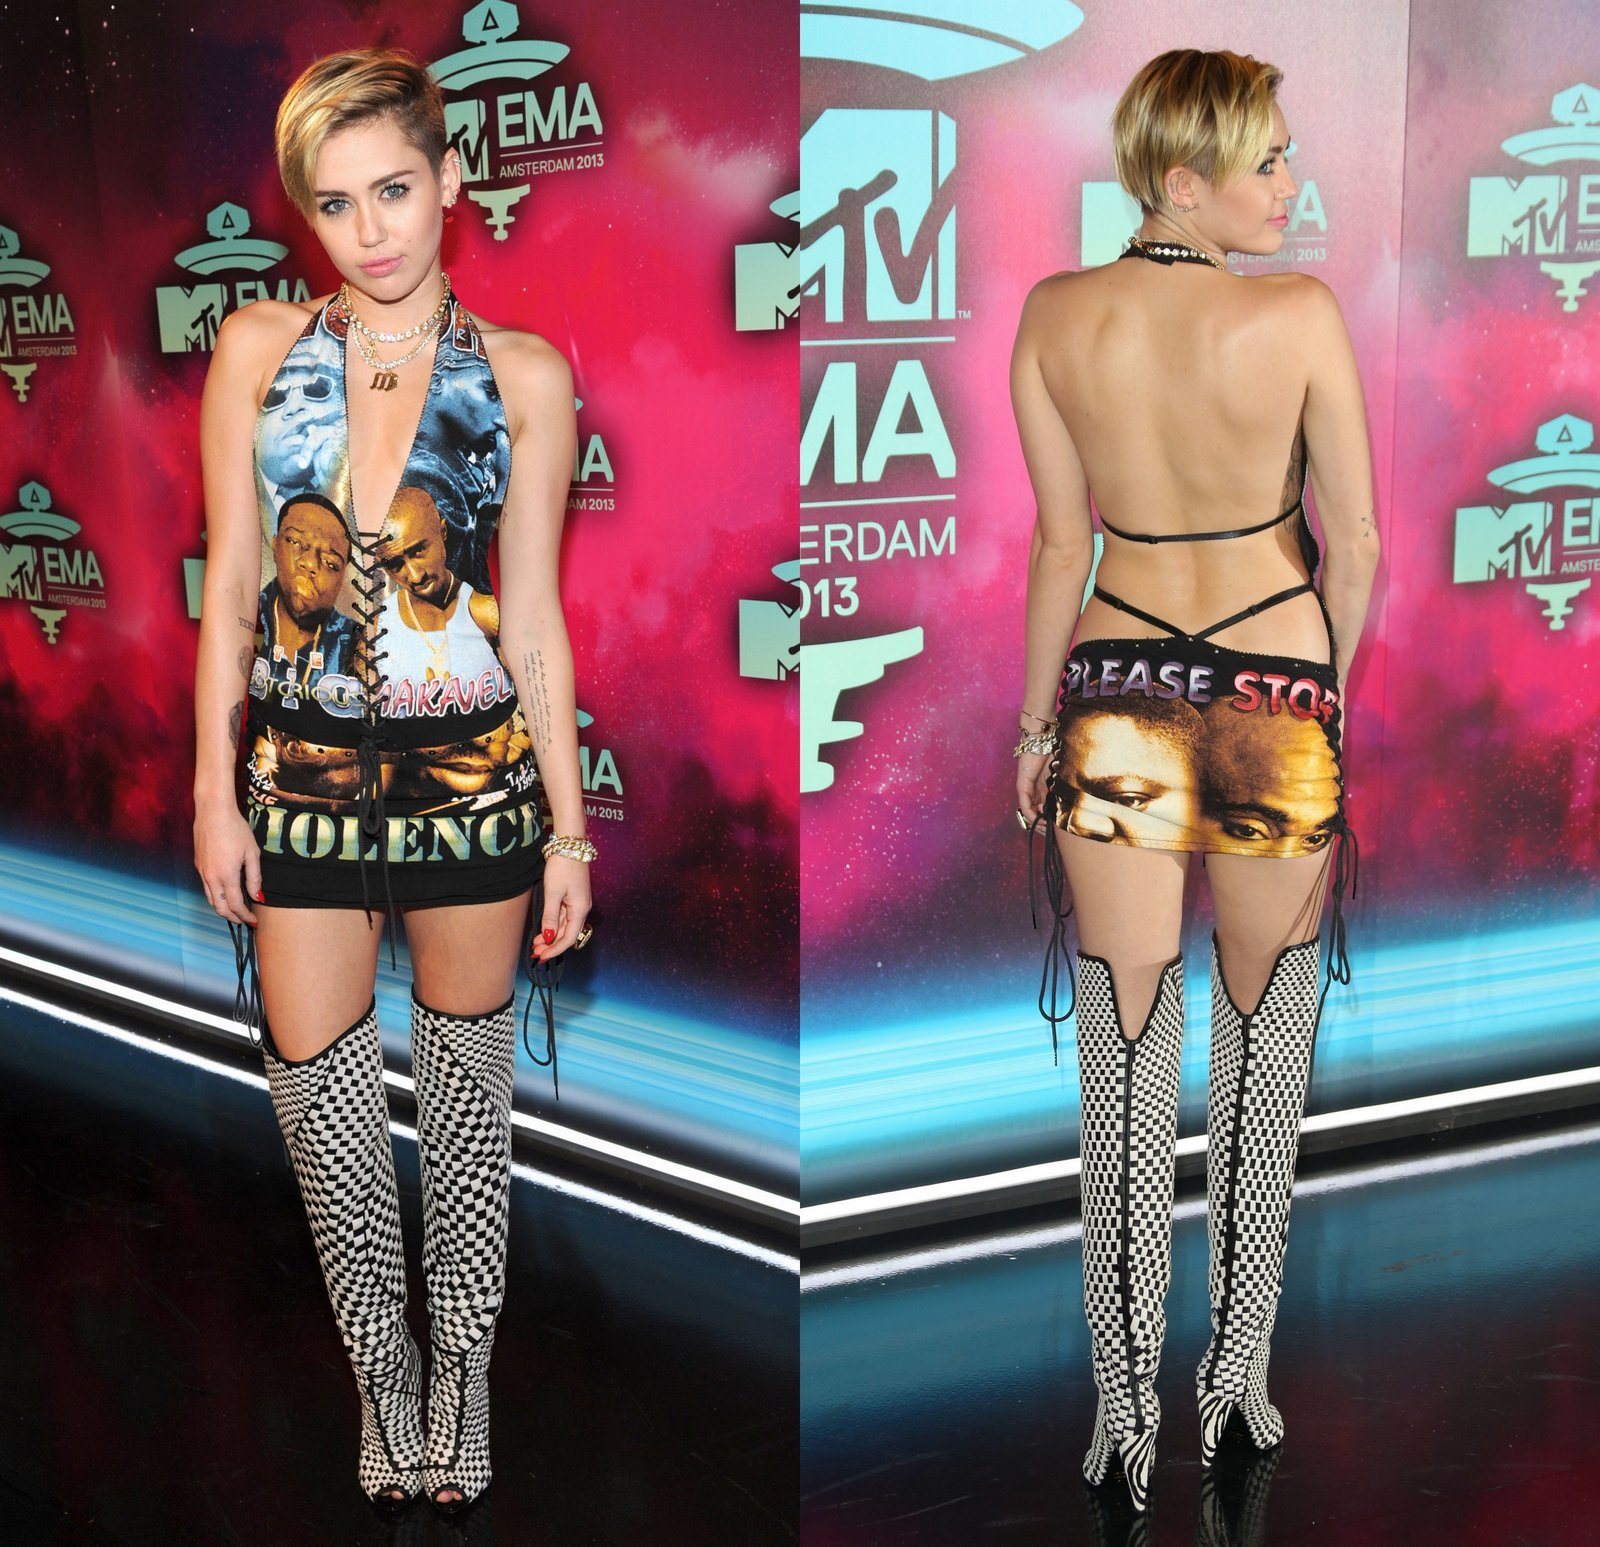 d58944ae3e1fb Undressed 2013: The Year in Celebrity Fashion Faux Pas | Gallery ...